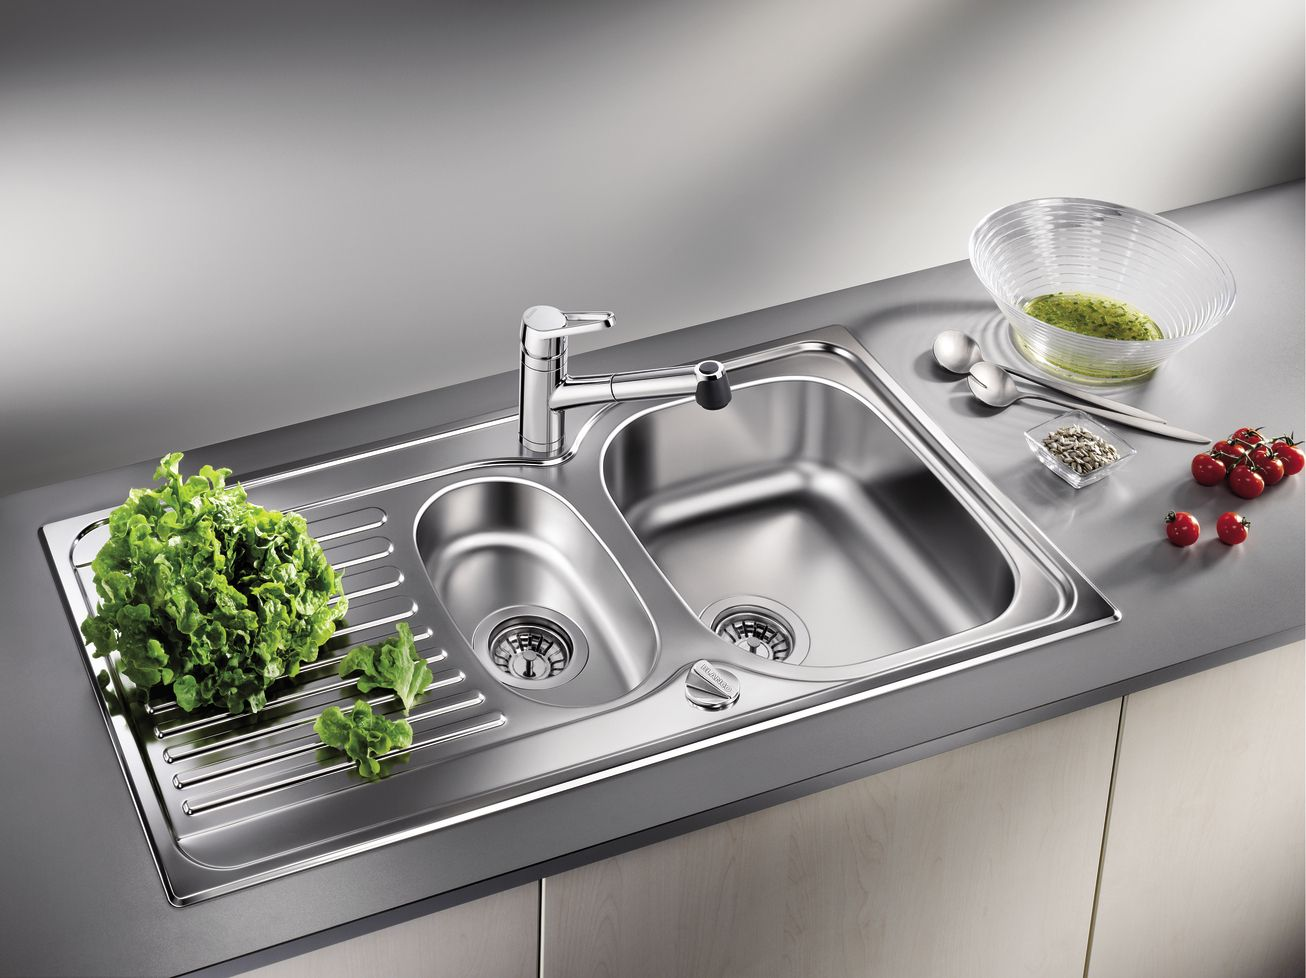 Stainless Steel Kitchen Sink Full Review and Choosing Advice